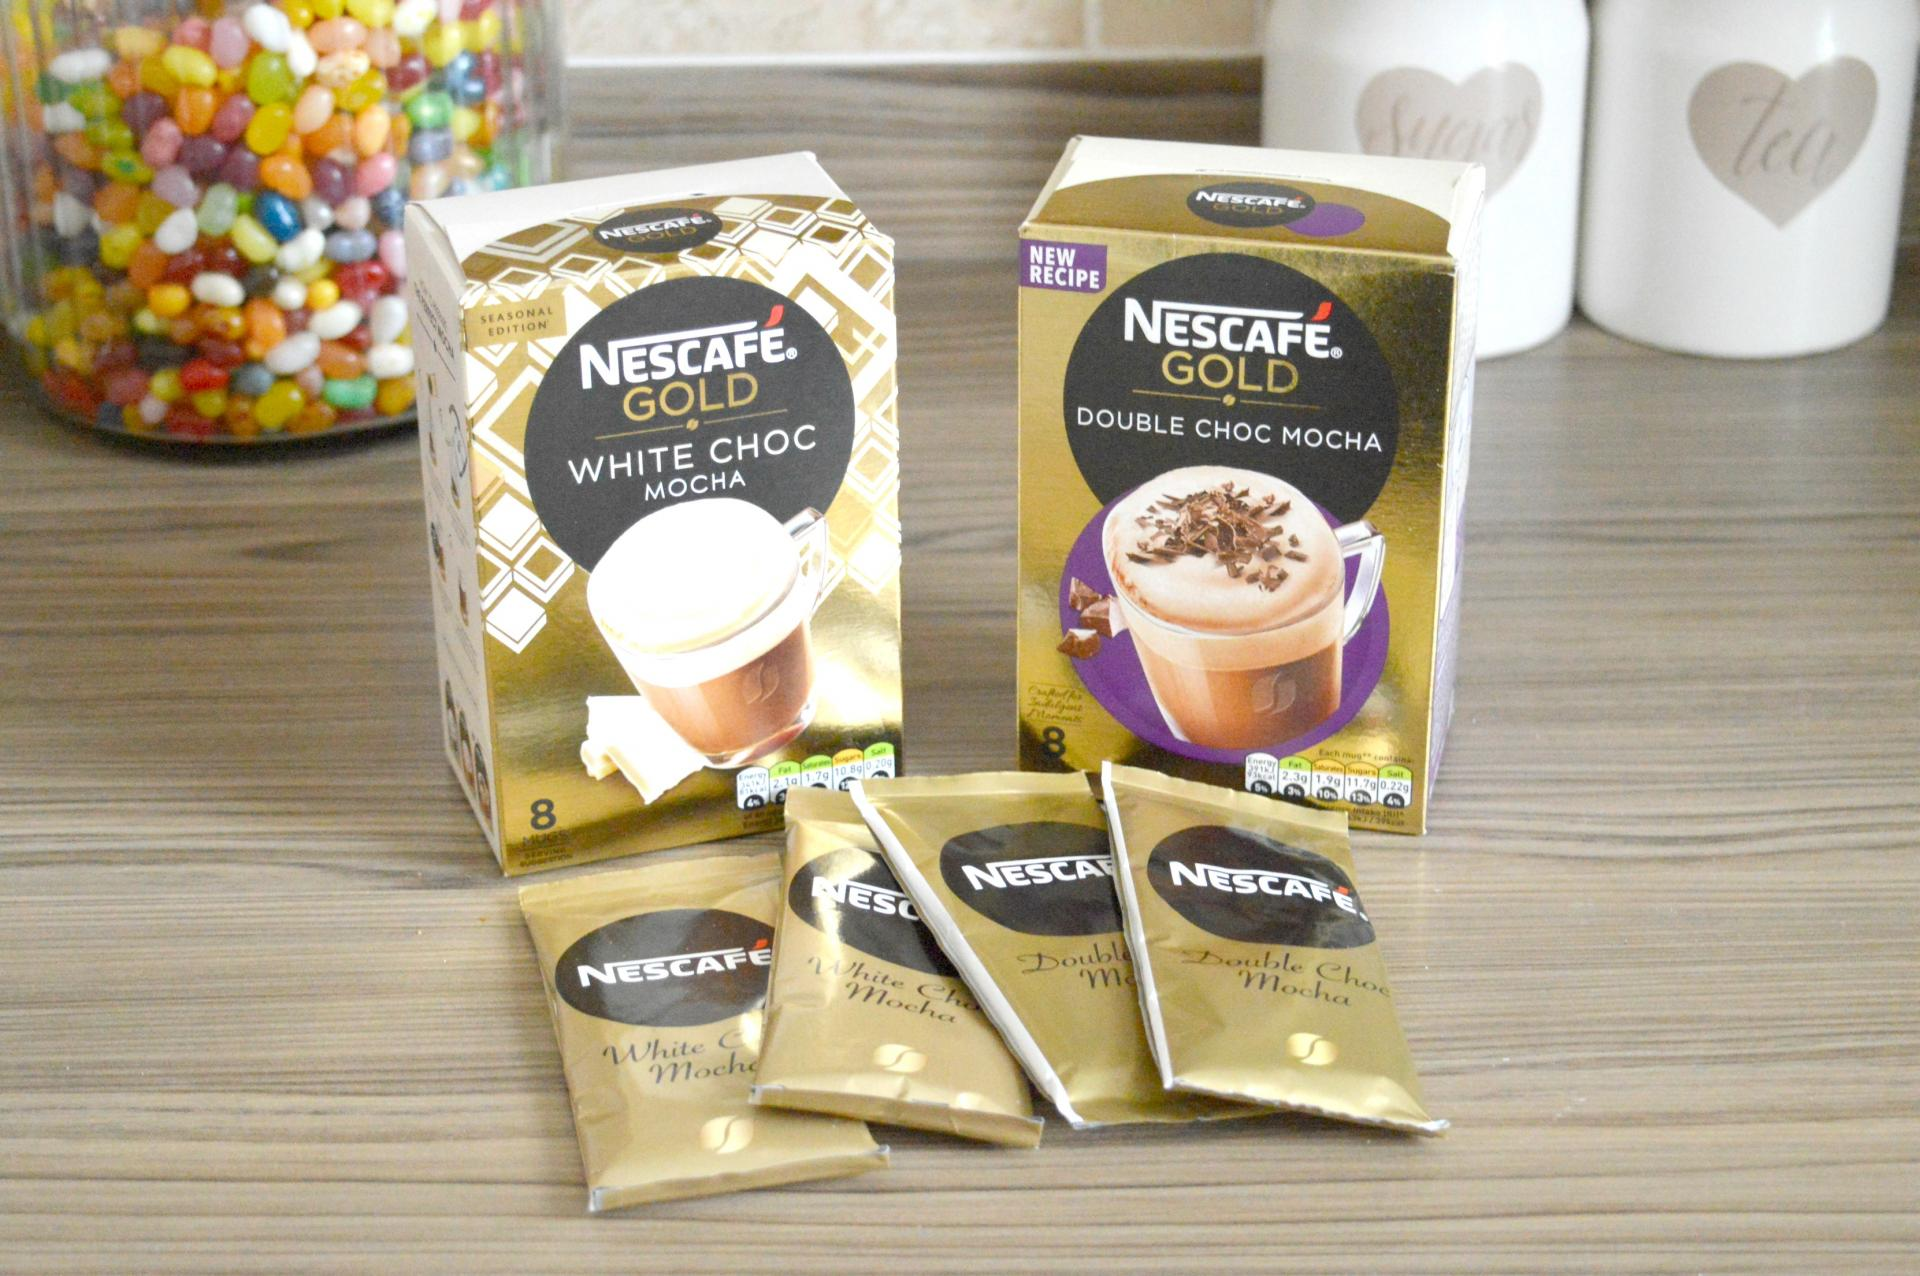 The Best At Home Coffee? Nescafe Gold Frothy Coffee - Nescafe Gold White Choc Mocha and Nescafe Gold Double Choc Mocha